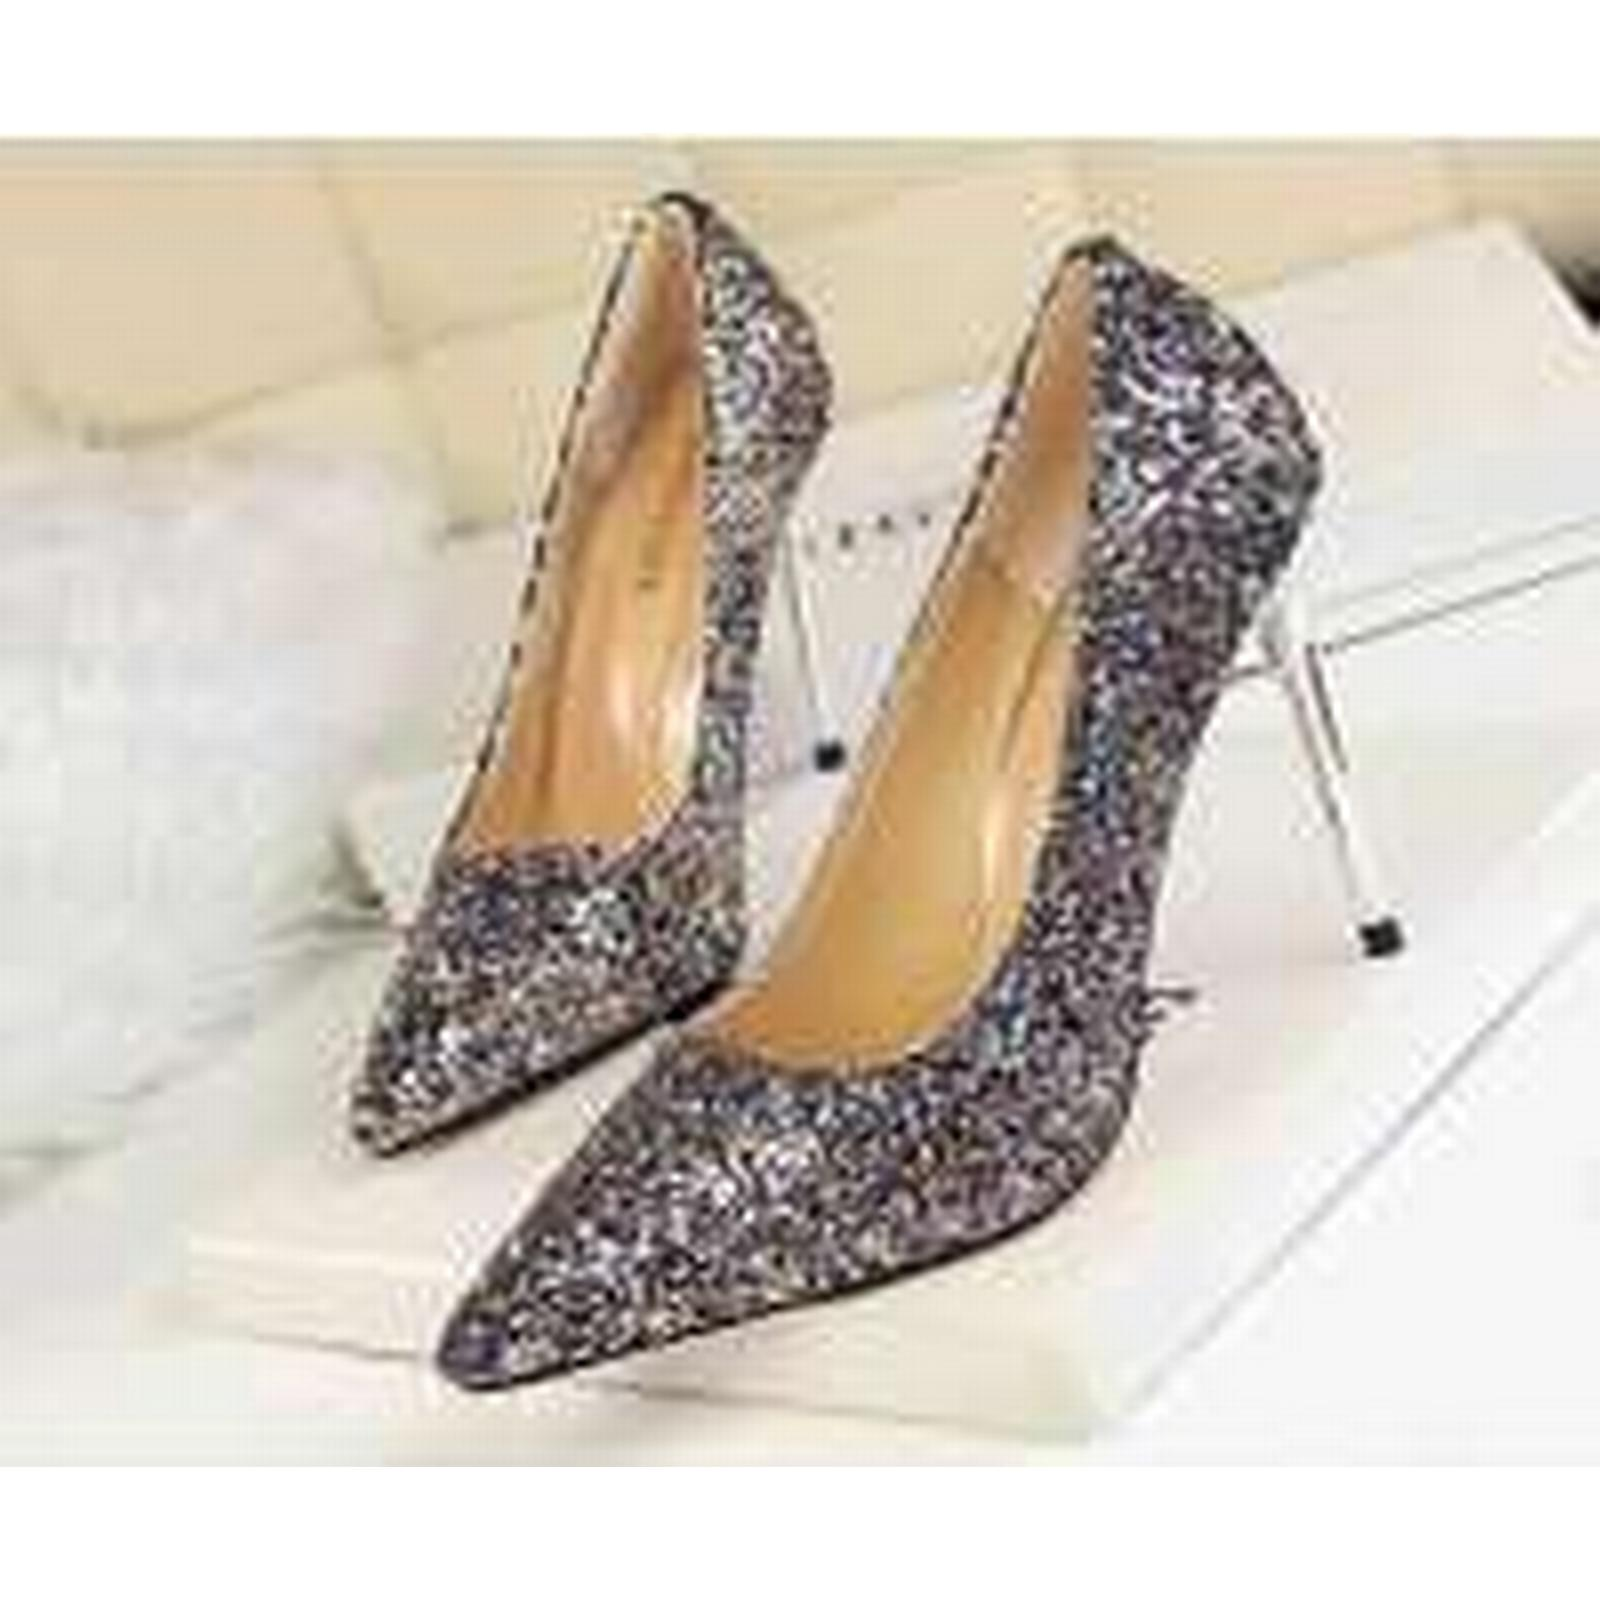 Bonanza leather, (Global) pp340 Luxury sequined pointy pumps, PU leather, Bonanza US Size 4-8.5, redmulti-color 10d1f5